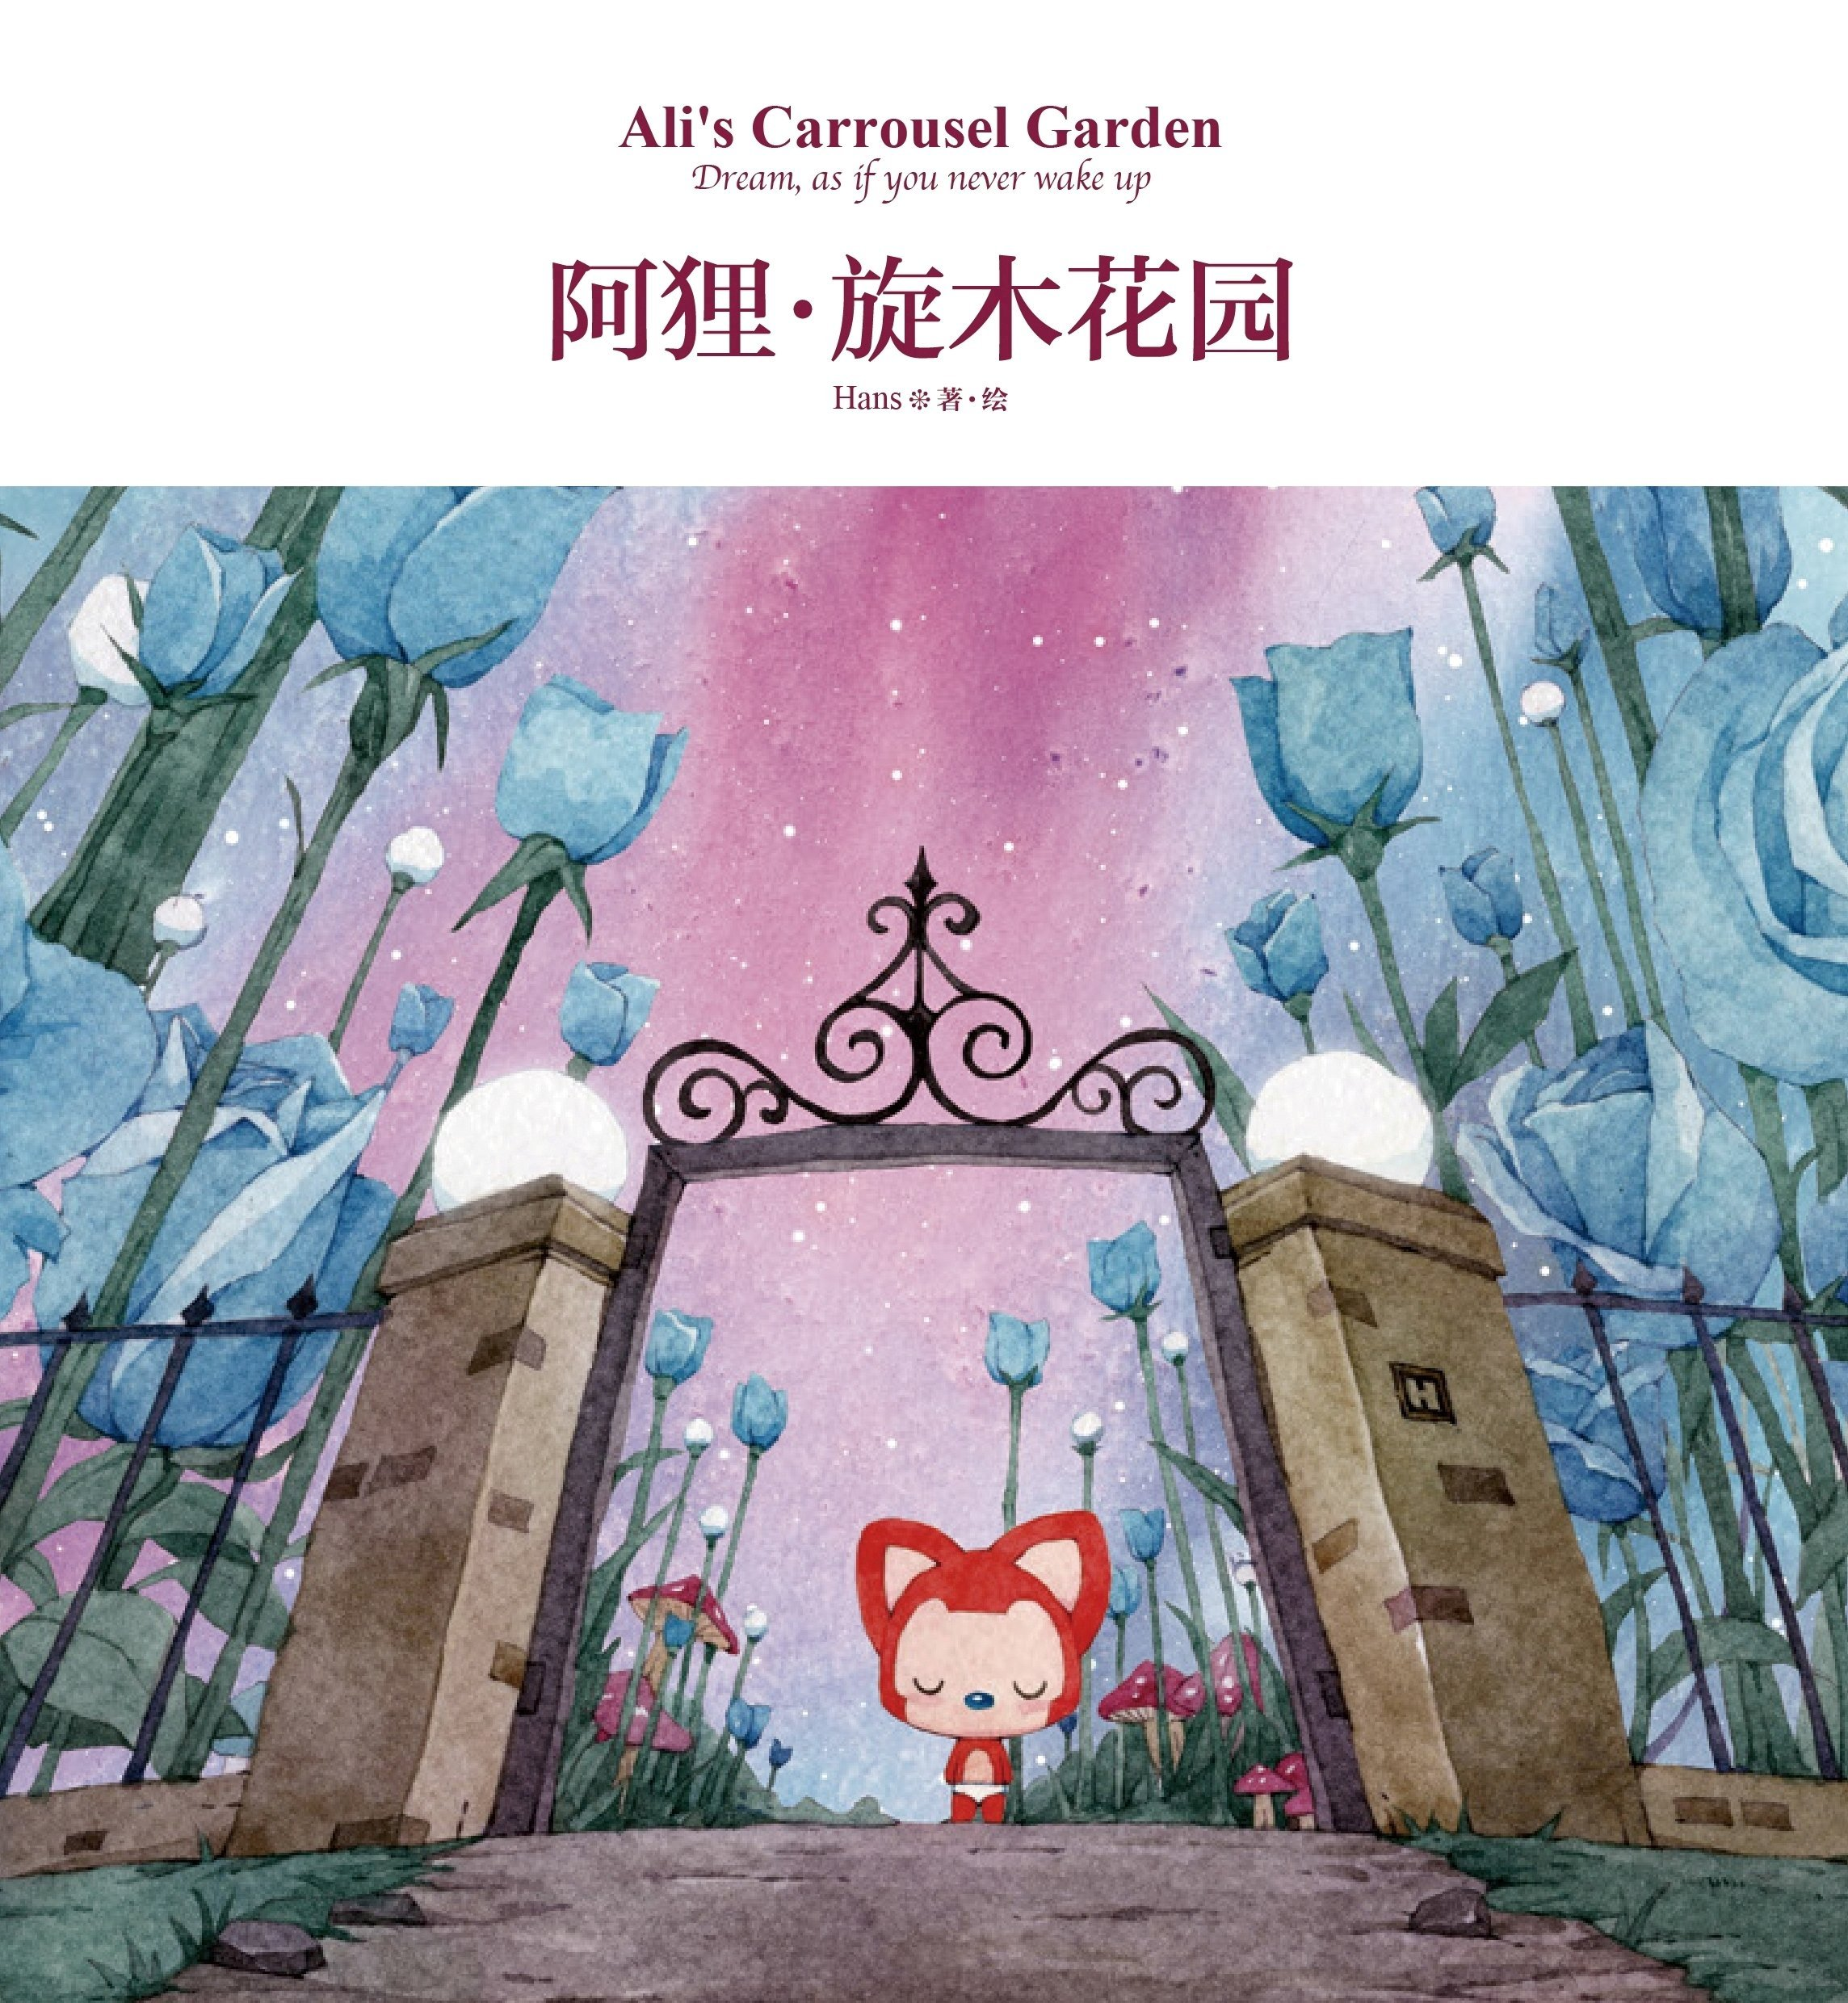 Read Online Ali's Carrousel Garden Dream,as if you never wake up (Chinese Edition) pdf